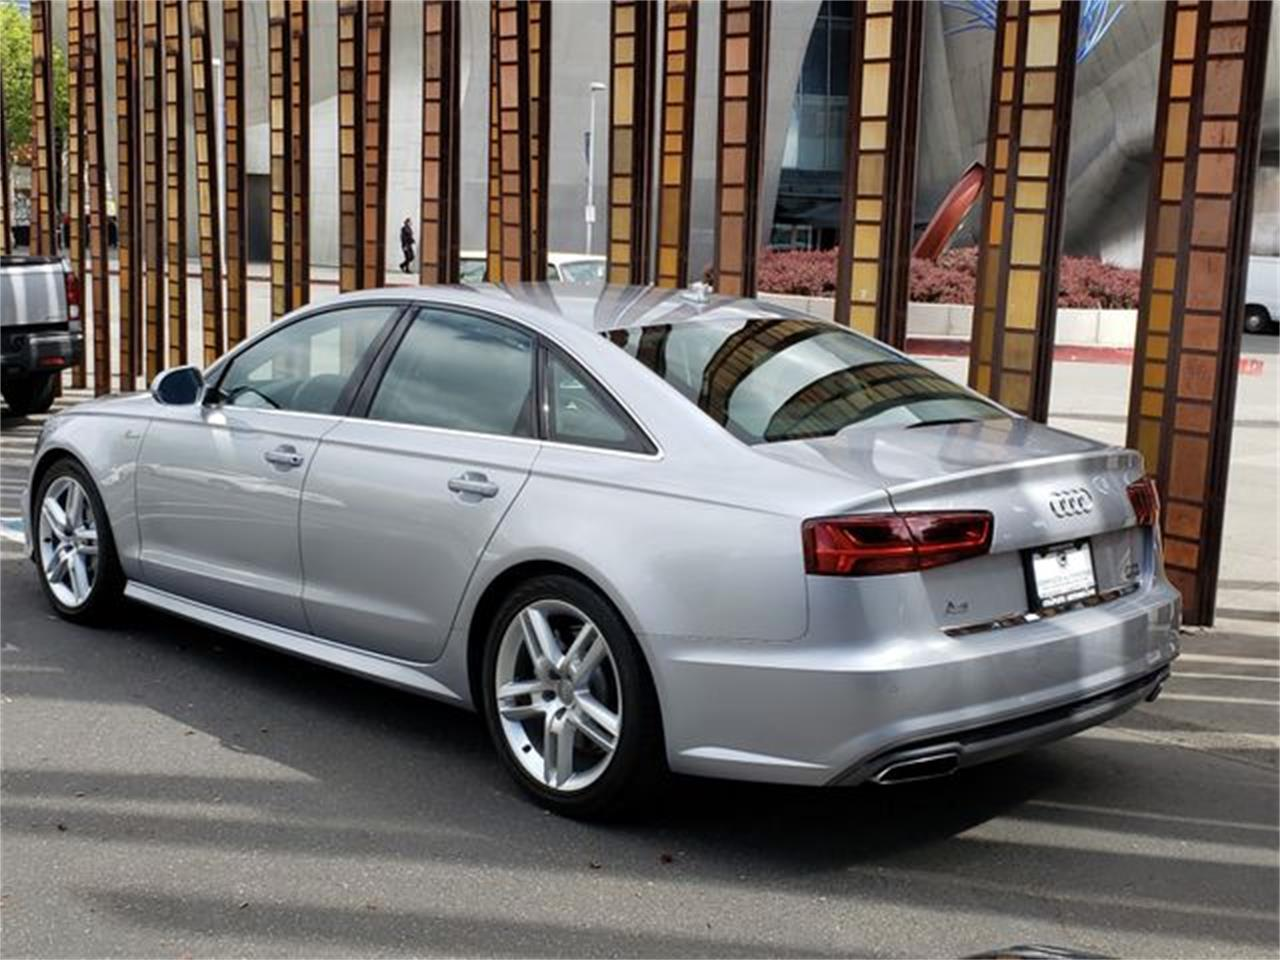 2016 Audi A6 for sale in Seattle, WA – photo 5